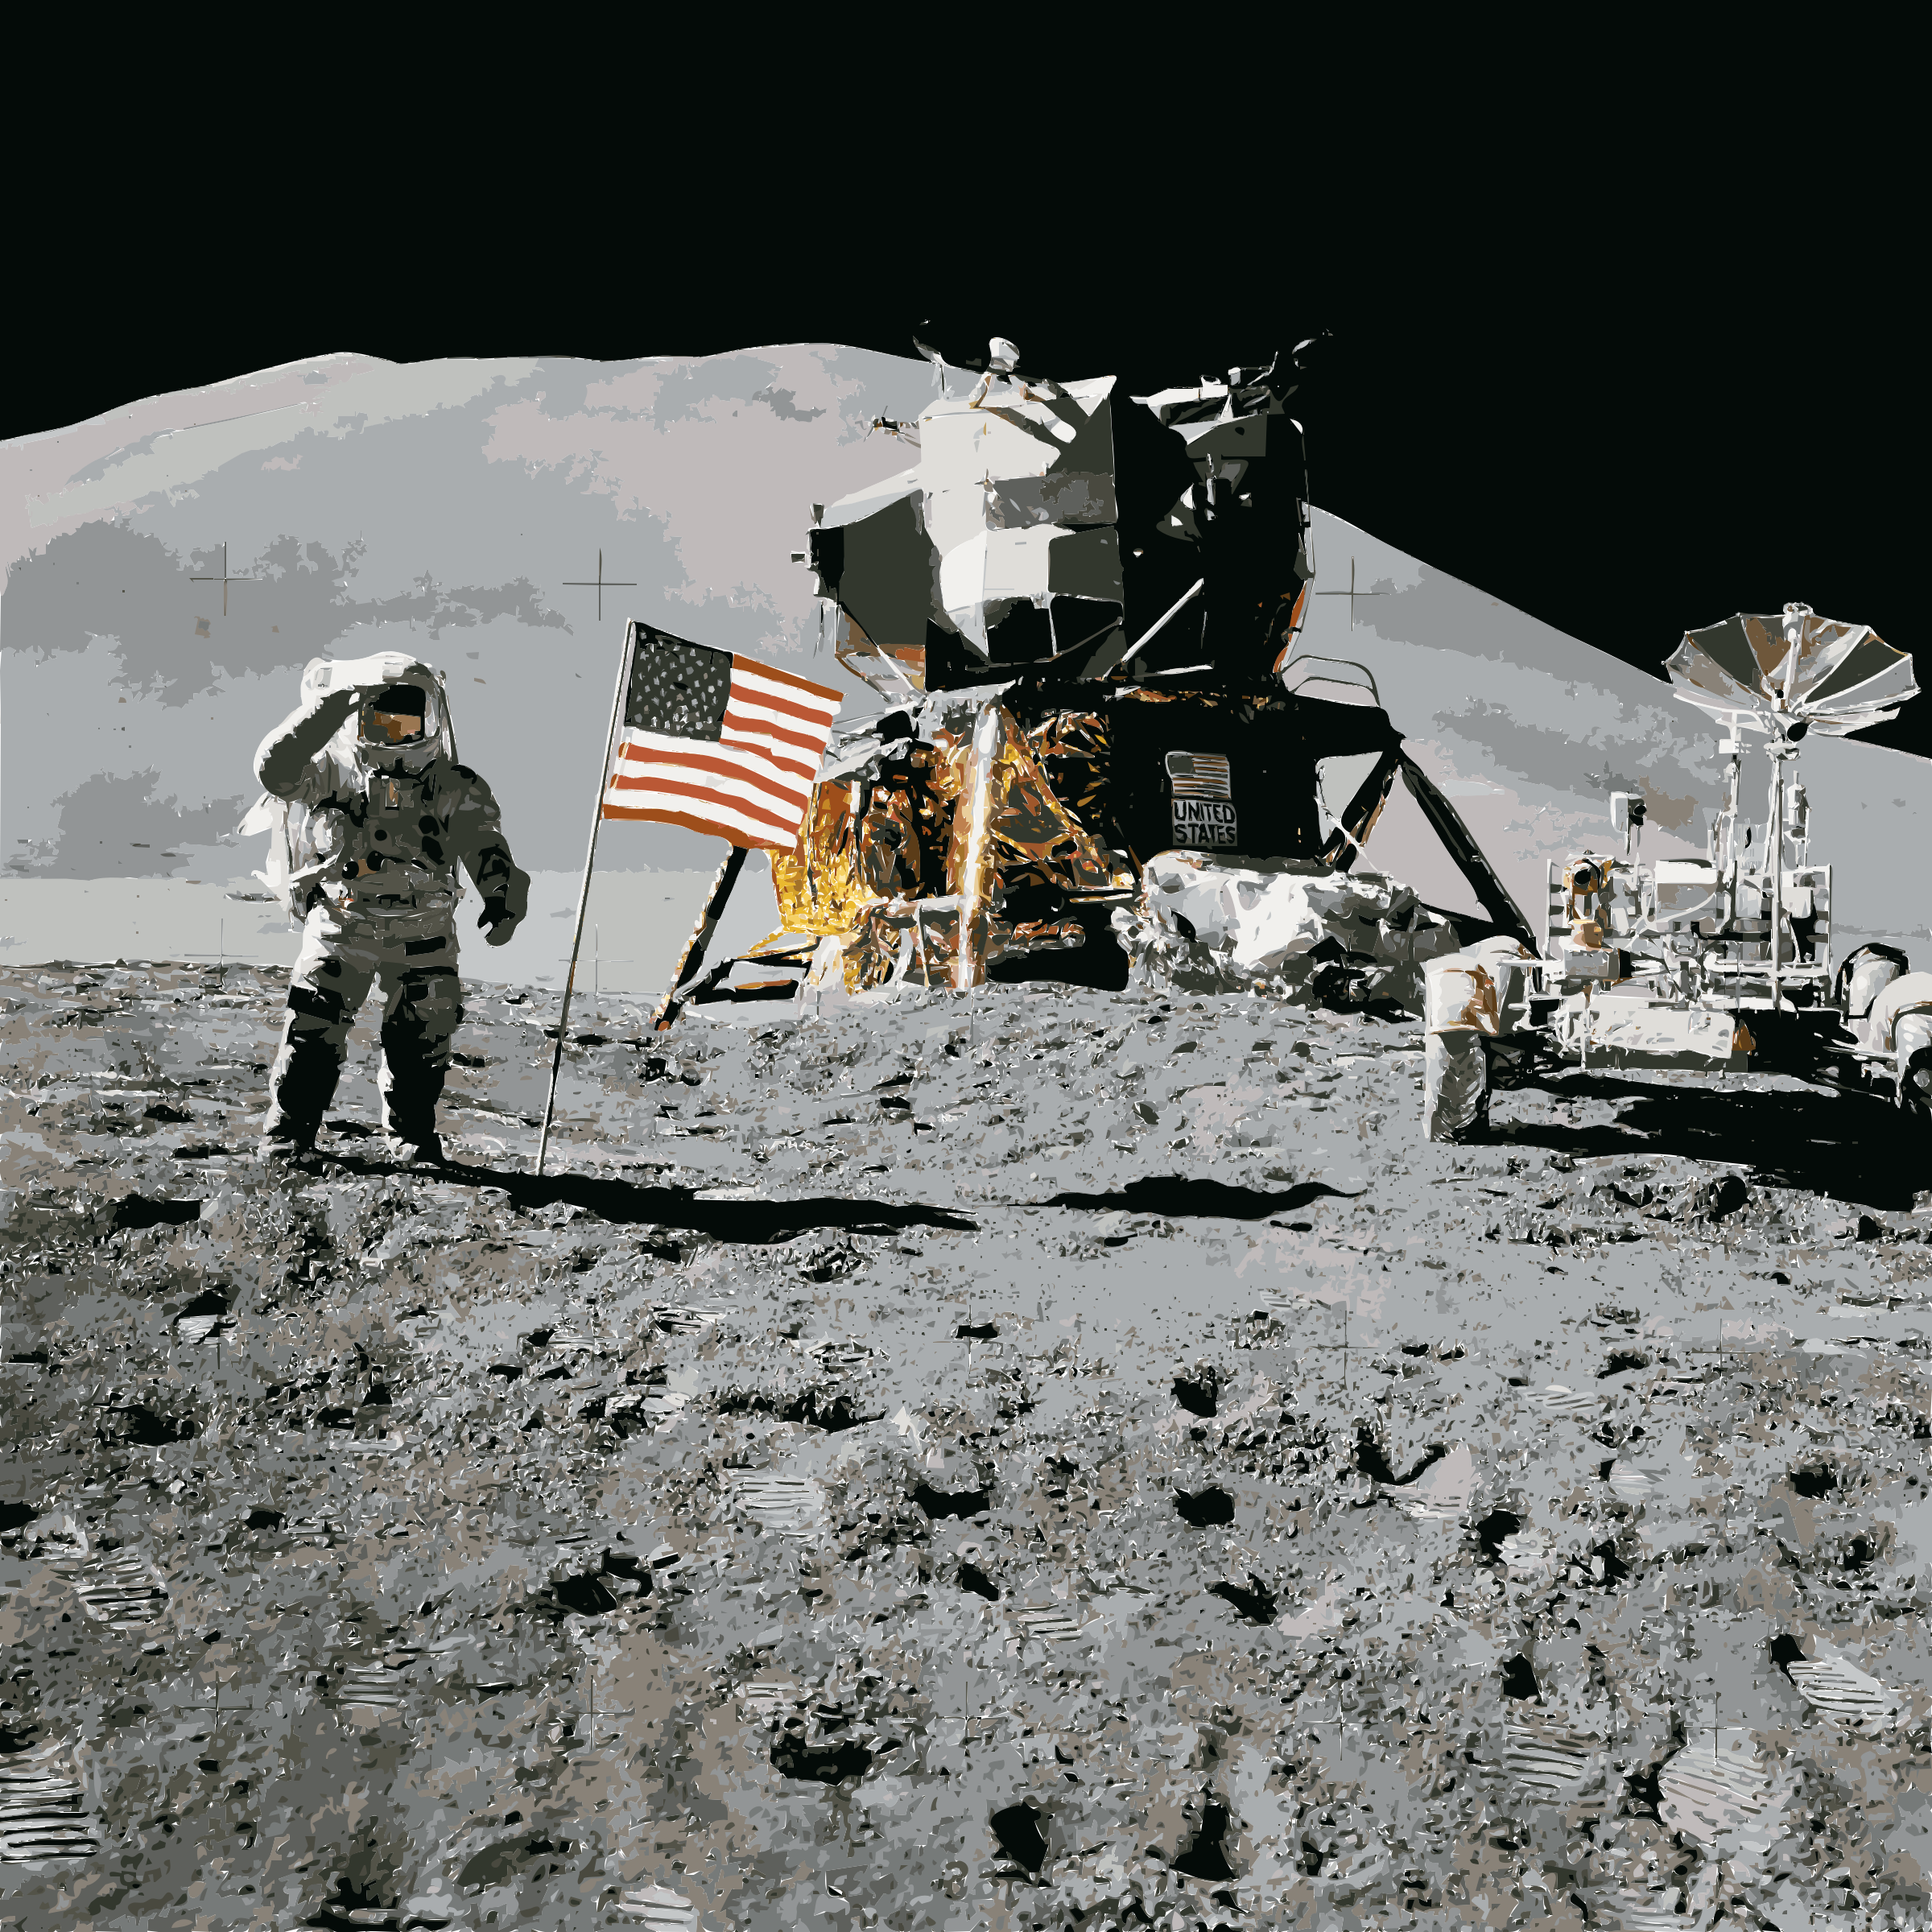 Apollo 15 flag, rover, LM, Irwin by 5ncrcv+exryzbsq0bgao